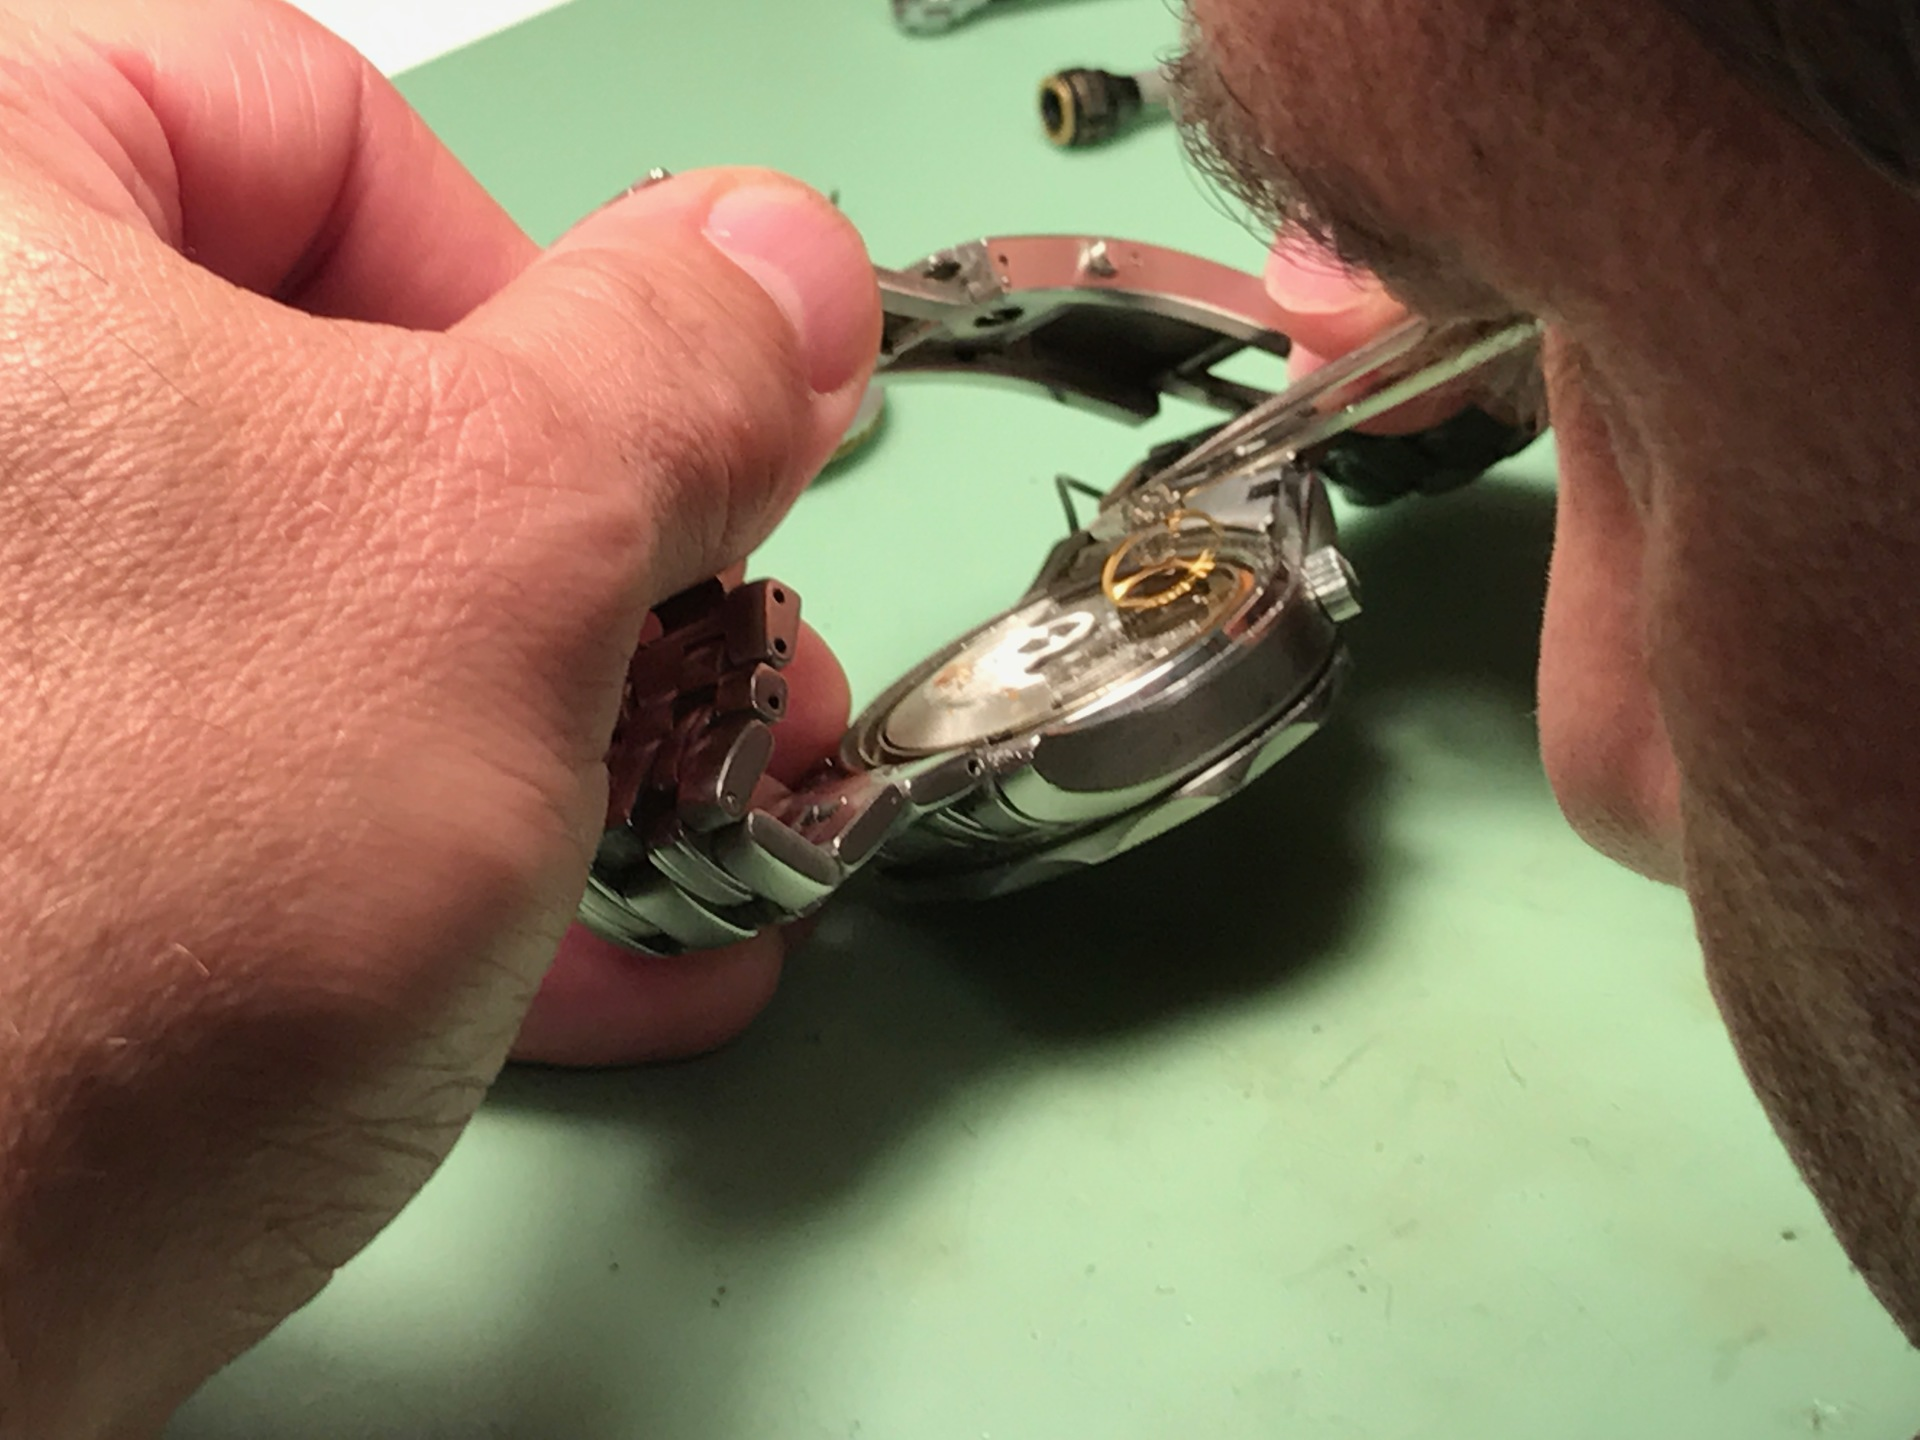 Experienced watchmaker